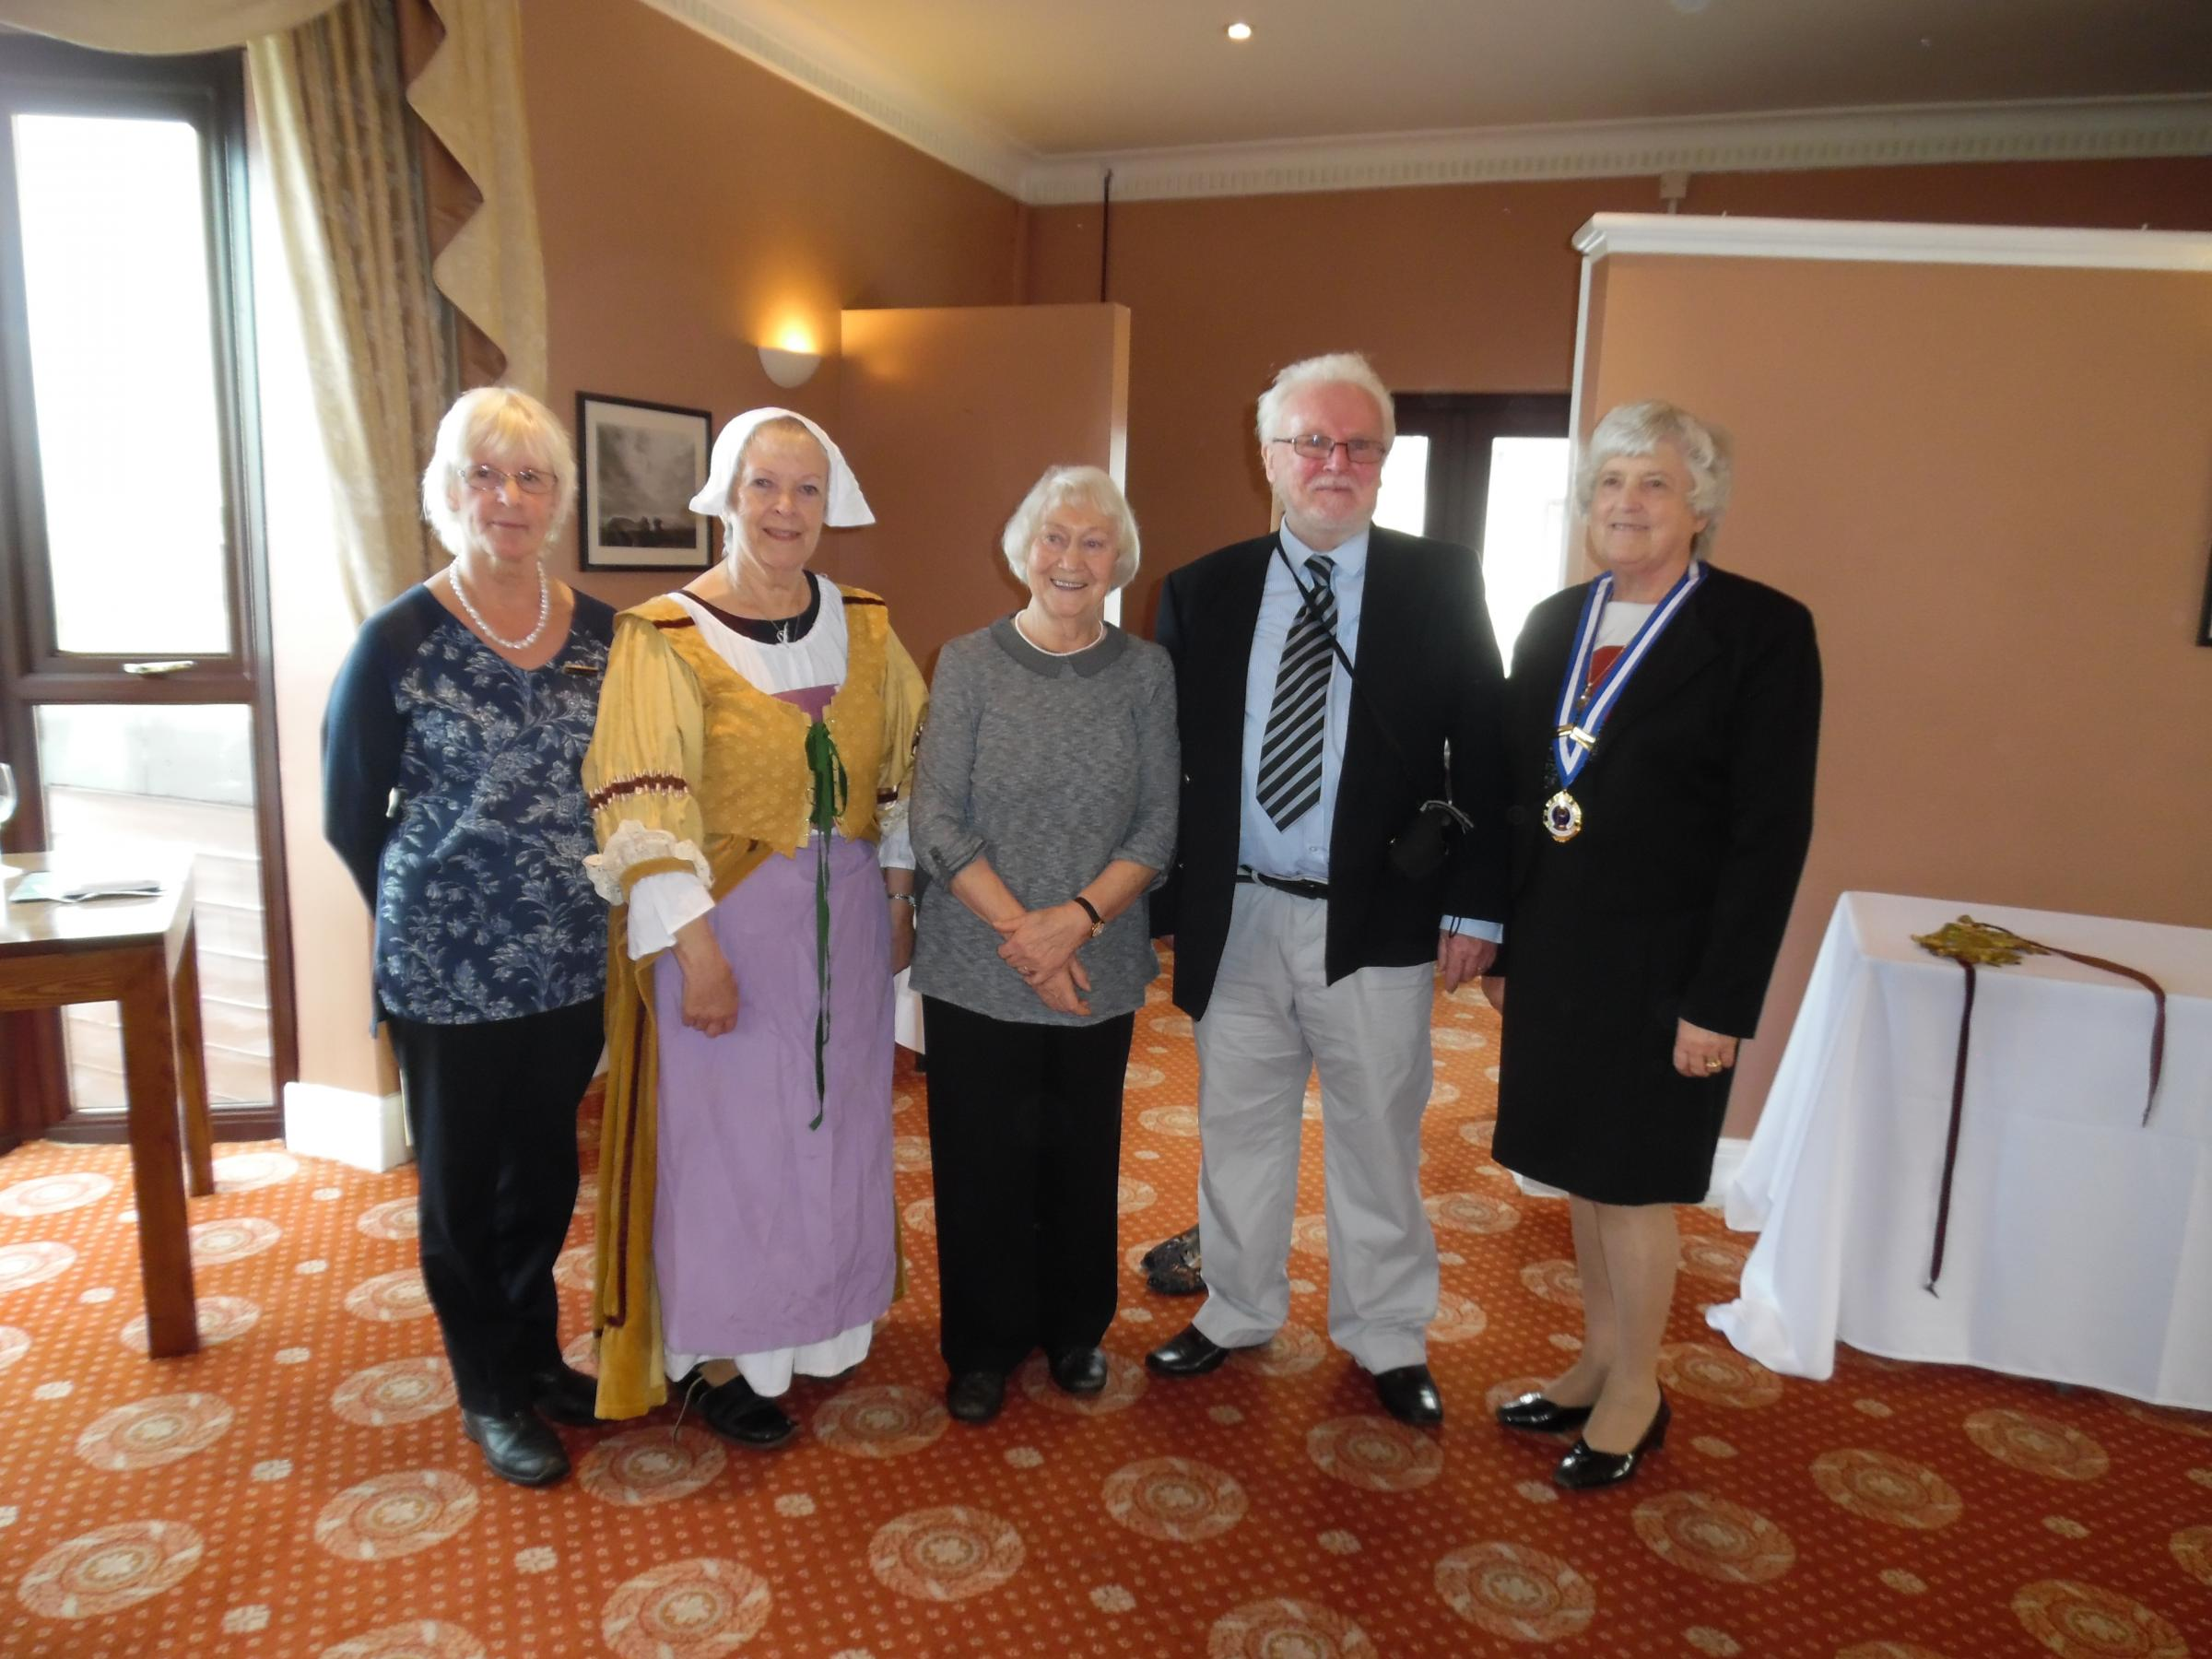 Pictured, from left, are: Yvonne Hurton, Rita Evans, Ann Dureau, Terry John and Christine Vater.